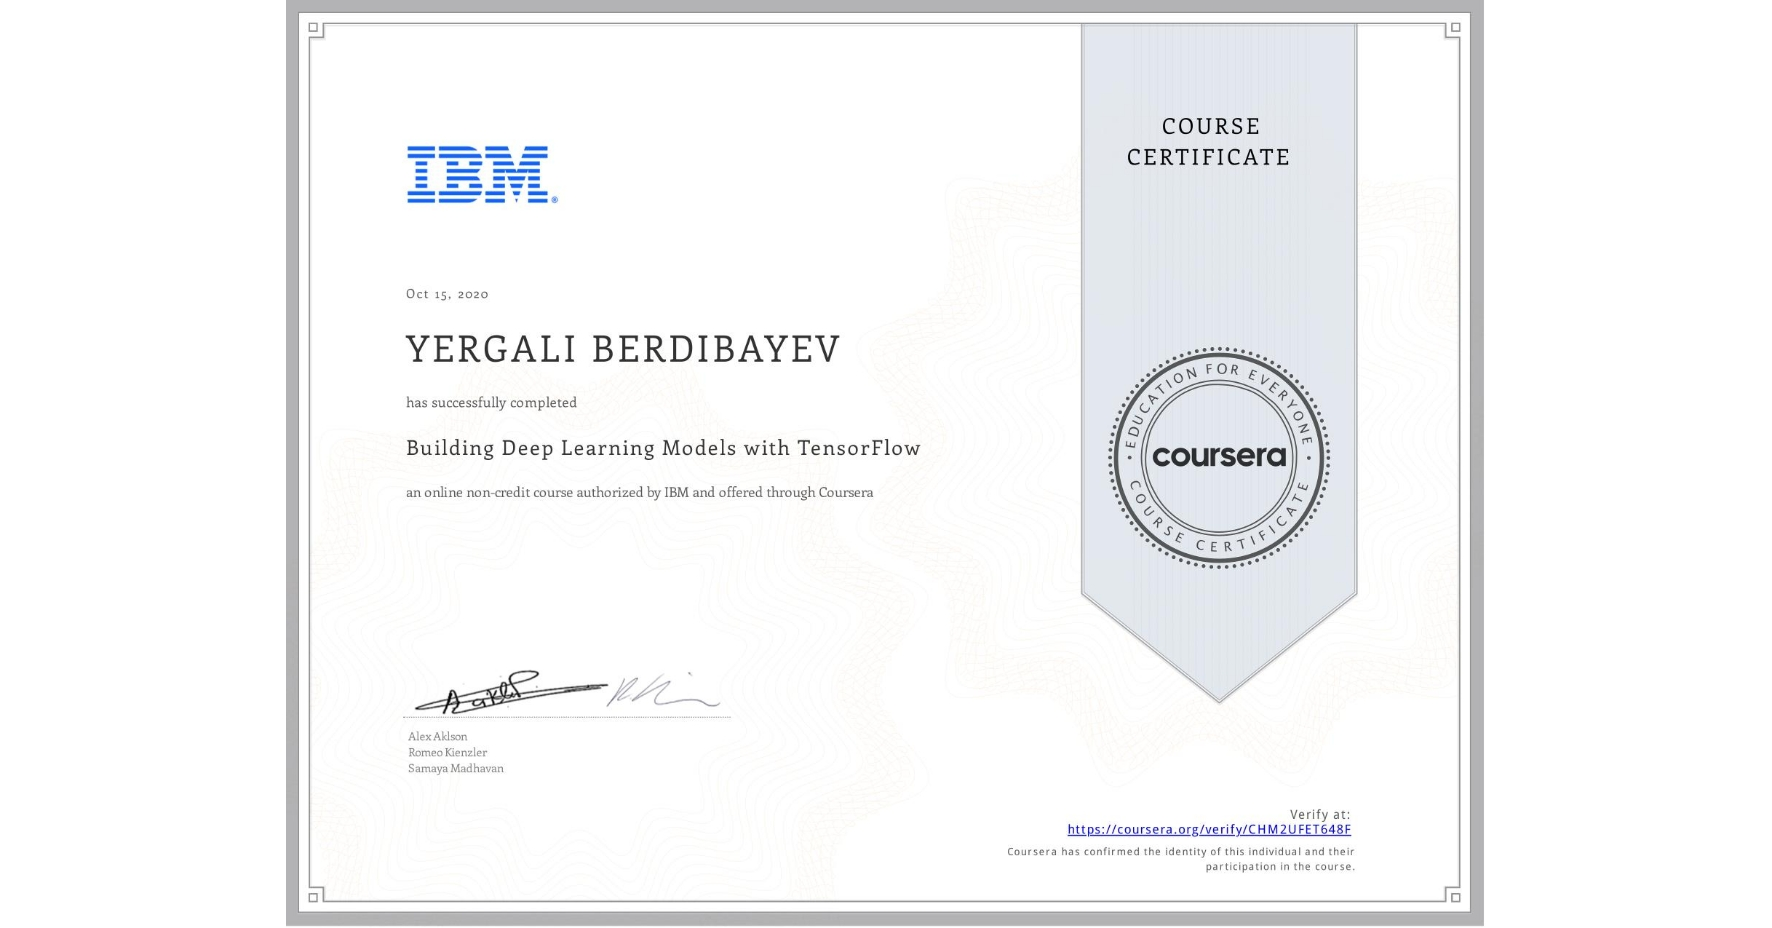 View certificate for Yergali Berdibayev, Building Deep Learning Models with TensorFlow, an online non-credit course authorized by IBM and offered through Coursera